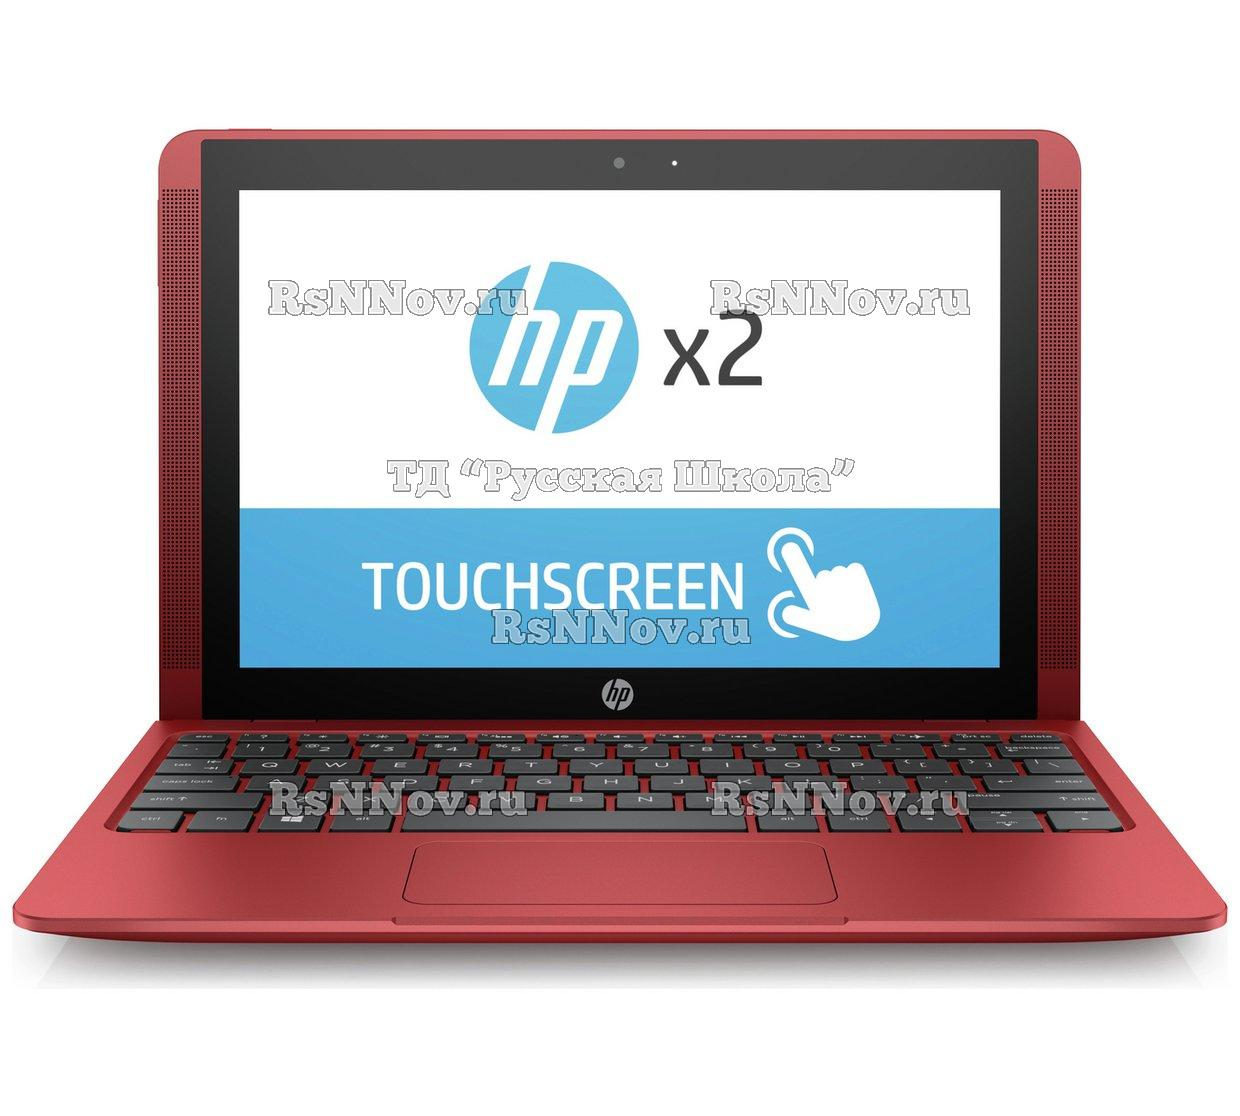 "Ноутбук-трансформер HP X2 Detachable 10-p004ur, 10.1"", IPS, Intel Atom X5 Z8350 1.44ГГц, 4Гб, 64Гб eMMC, Intel HD Graphics 400, Windows 10, Y5V06EA, красный"